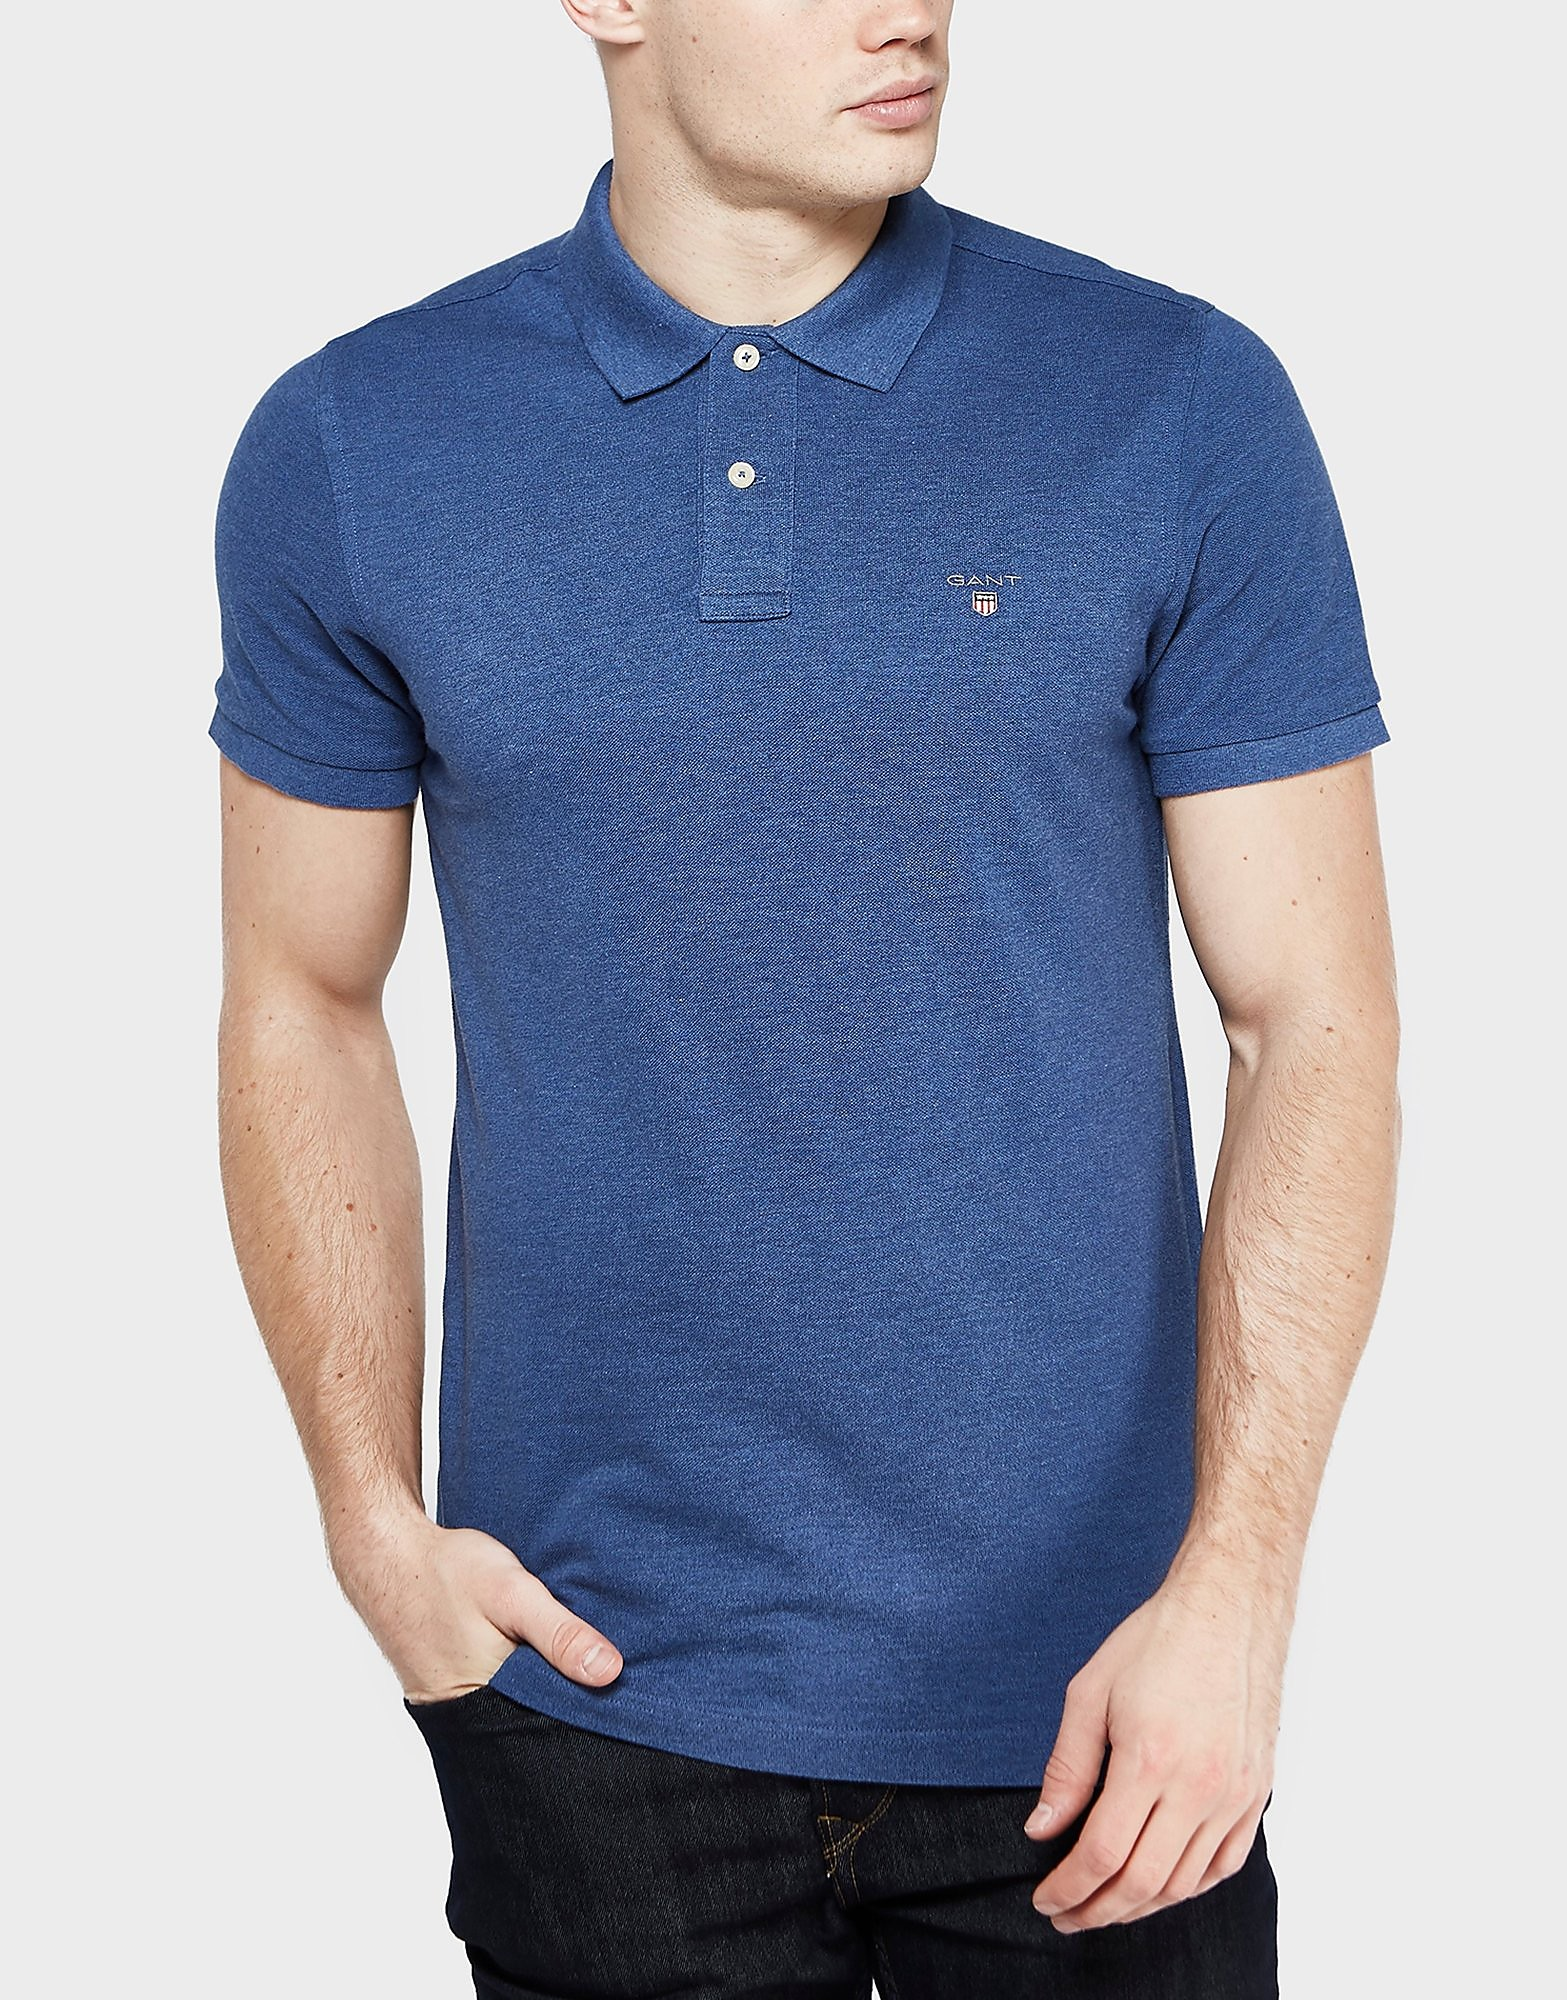 GANT Pique Rugger Short Sleeve Polo Shirt